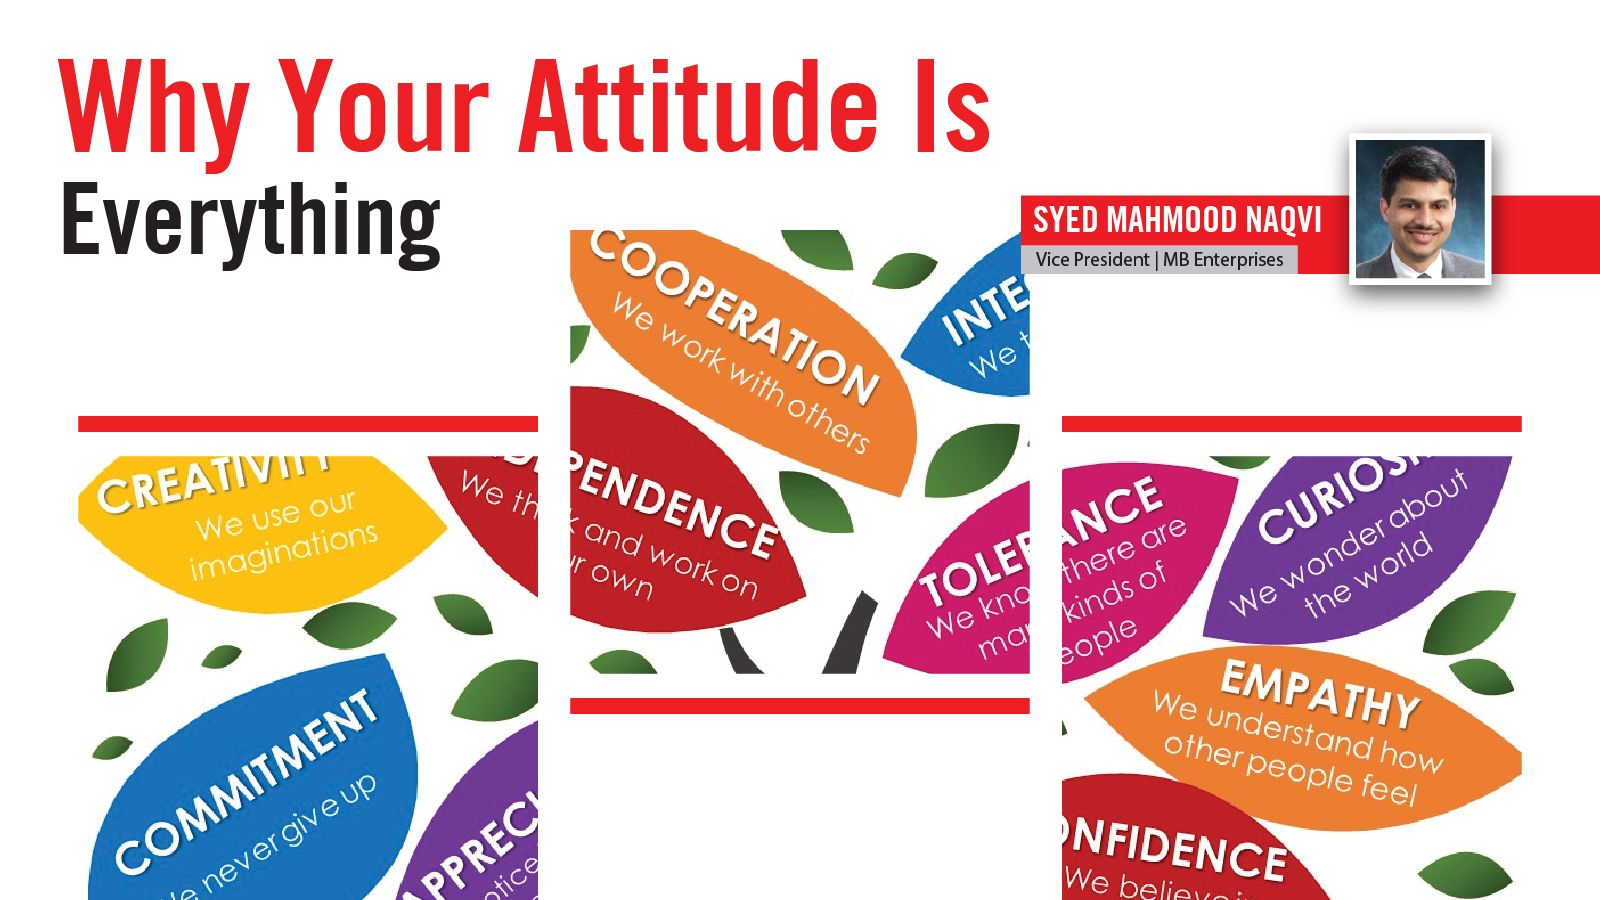 WHY YOUR ATTITUDE IS EVERYTHING? HOW TO KEEP IT POSITIVE?